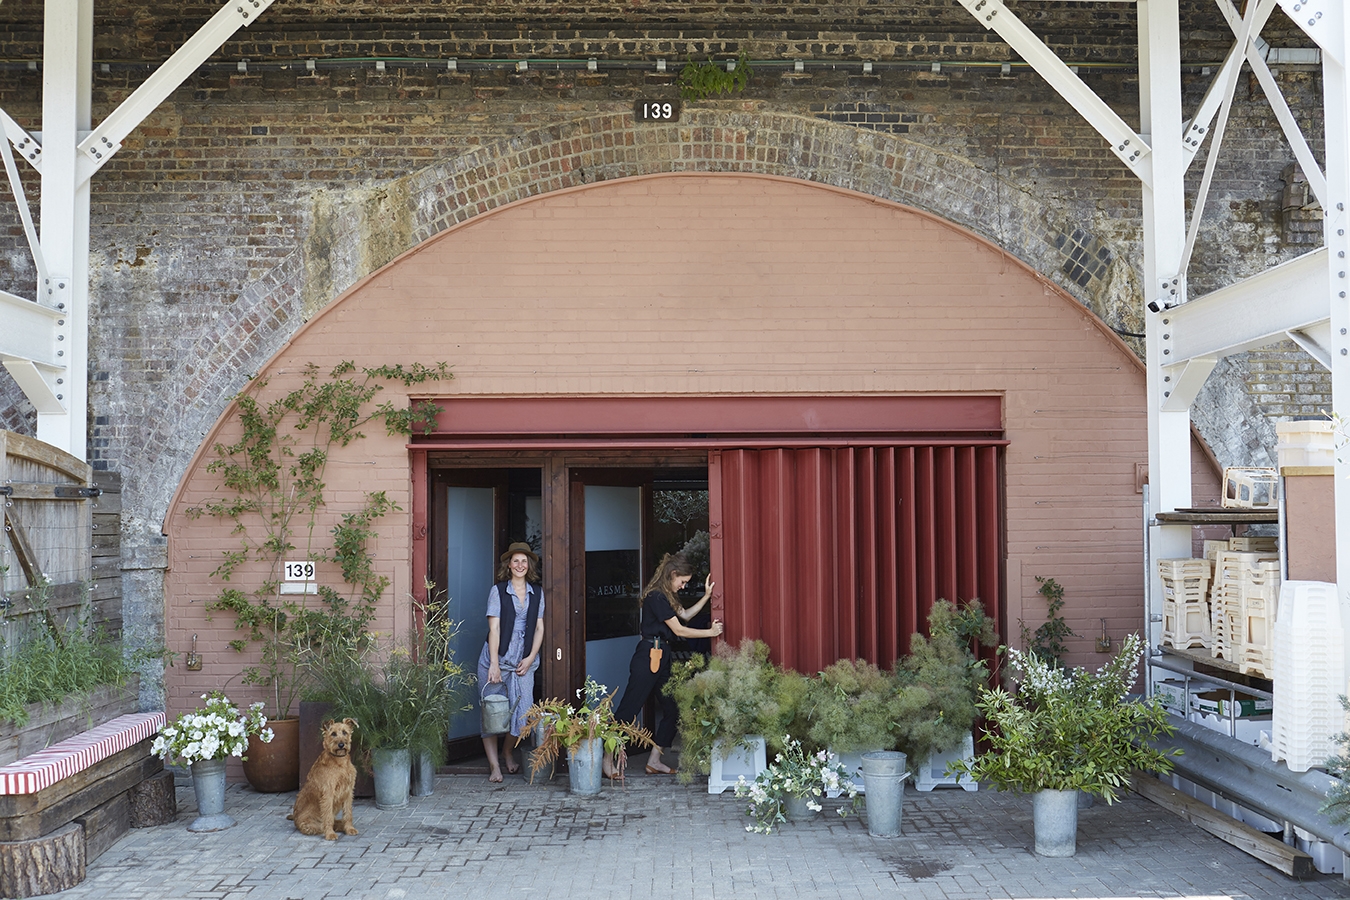 A converted Victorian railway arch in Shepherd's Bush, the studio opens on the east side of a brick-built viaduct, between the terraced houses of Macfarlane Road and Frithville Gardens. Above is the extended platform of Shepherd's Bush Market Underground station, where tubes rumble to halt on the Hammersmith & City and Circle lines. Photograph by  Kristin Perers